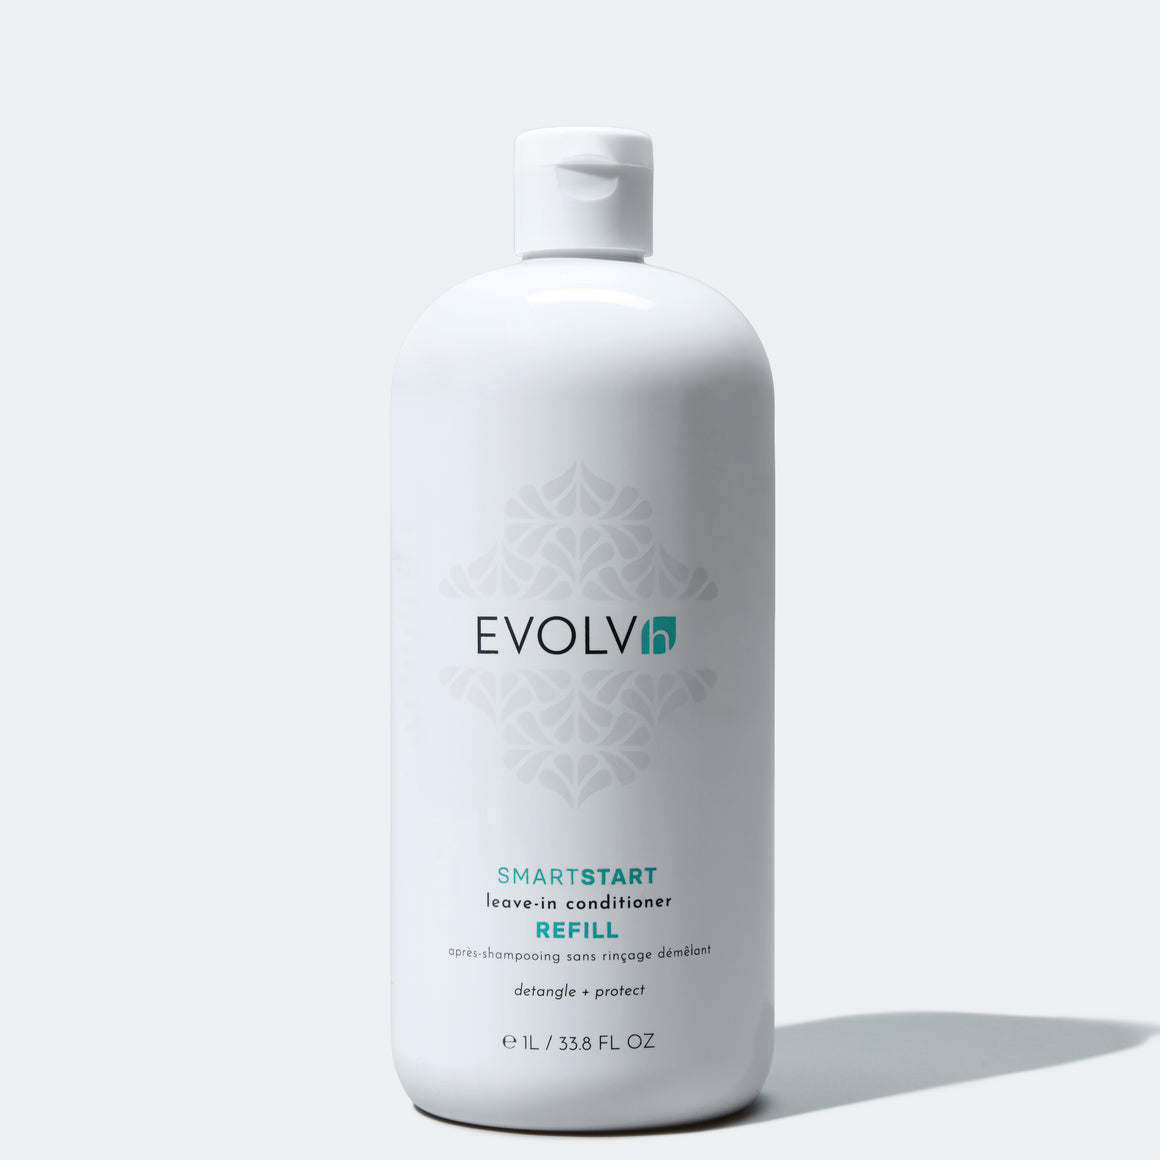 The best clean beauty heat styling protectant leave-in conditioner